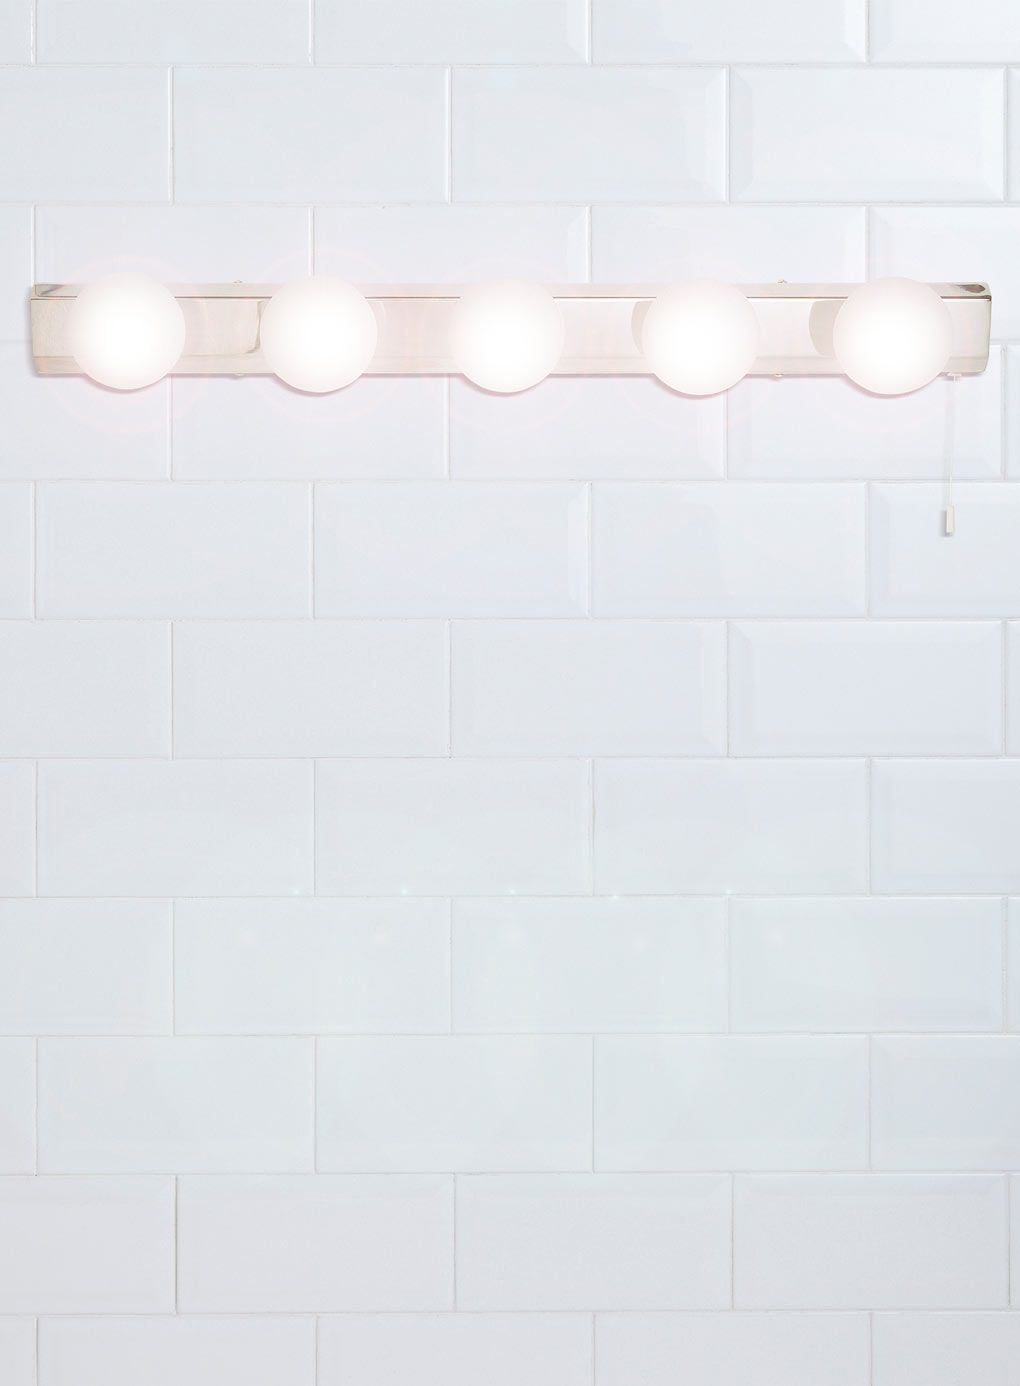 Chrome Ara 5 Light Wall Light Bhs Beauty Fashion Bathroom